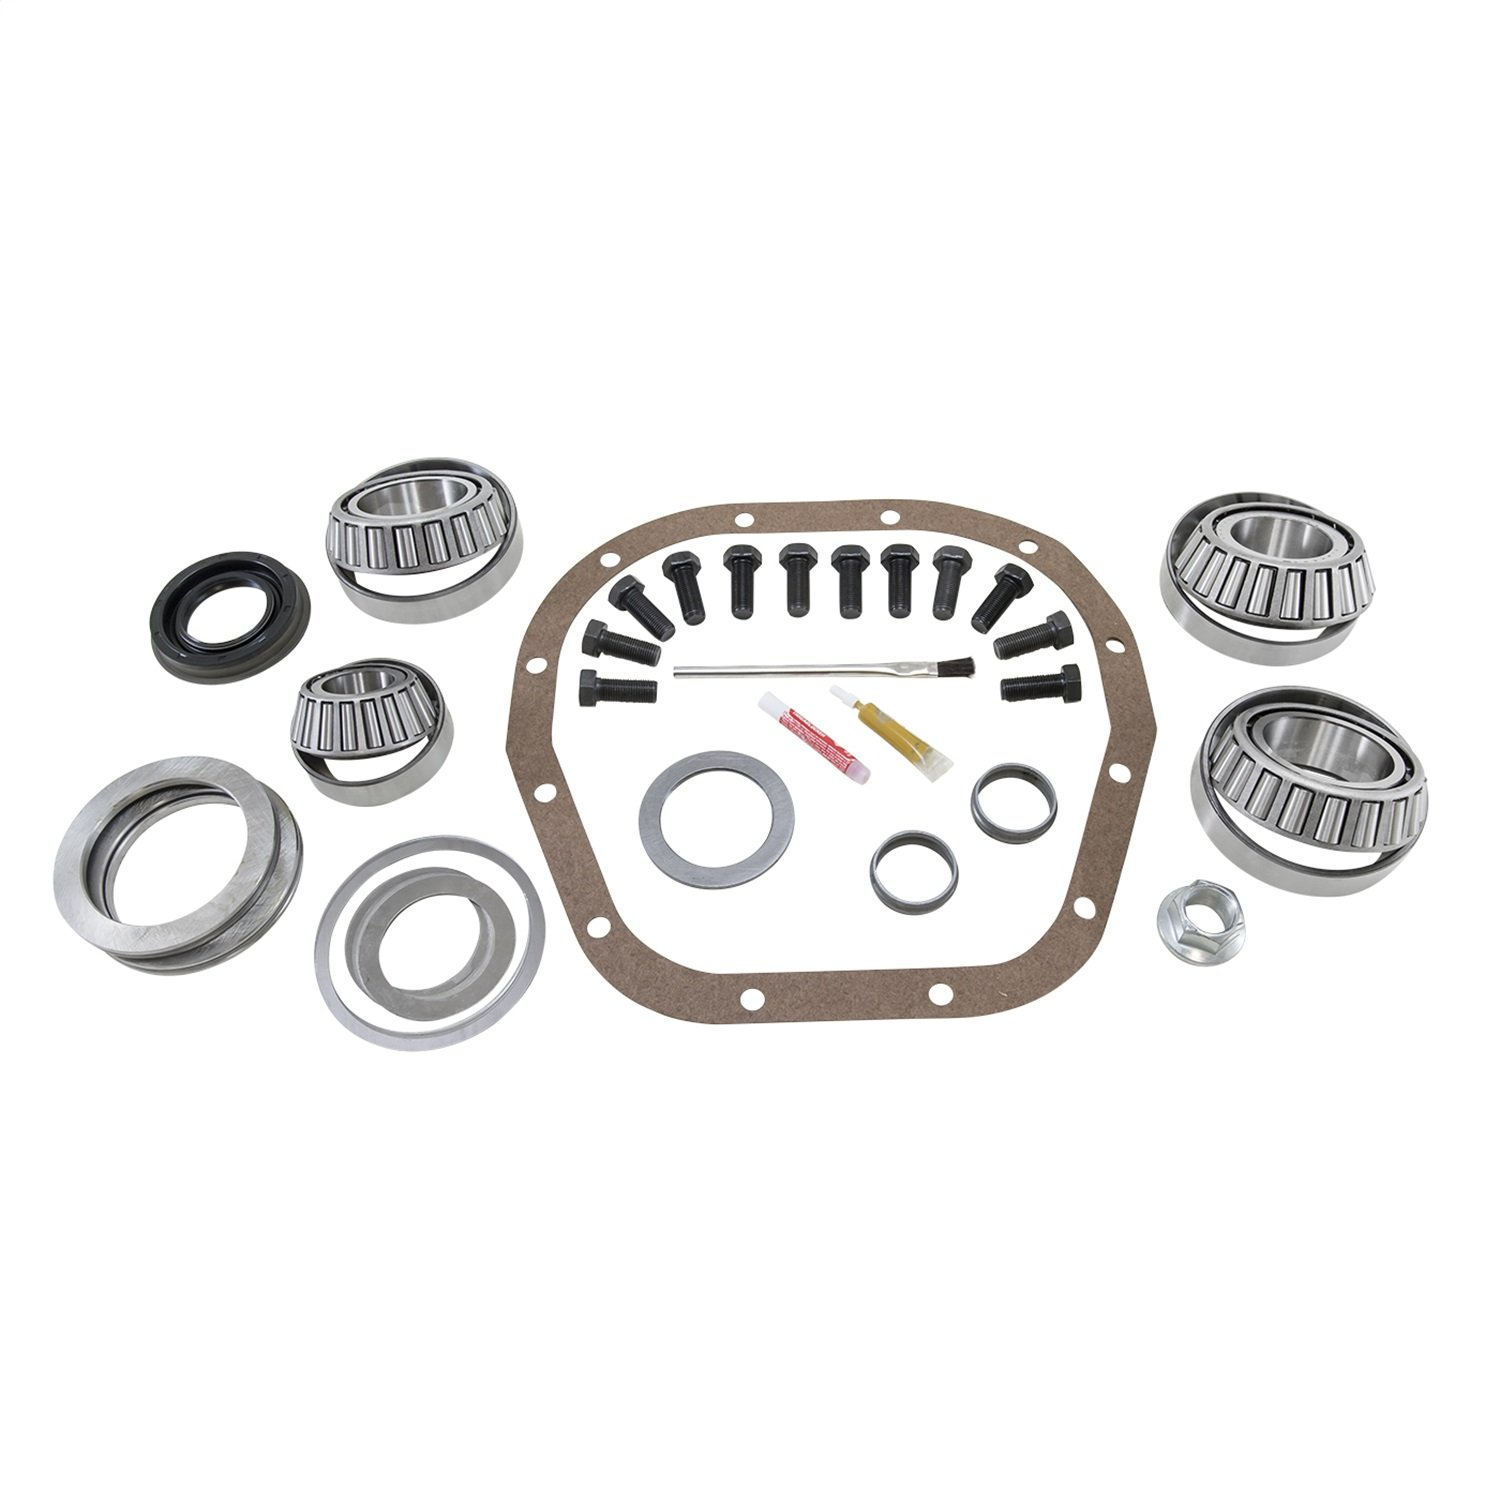 YK F10.5-A Yukon YKF10.5-A Master Overhaul Kit for Ford 10.50 Differential